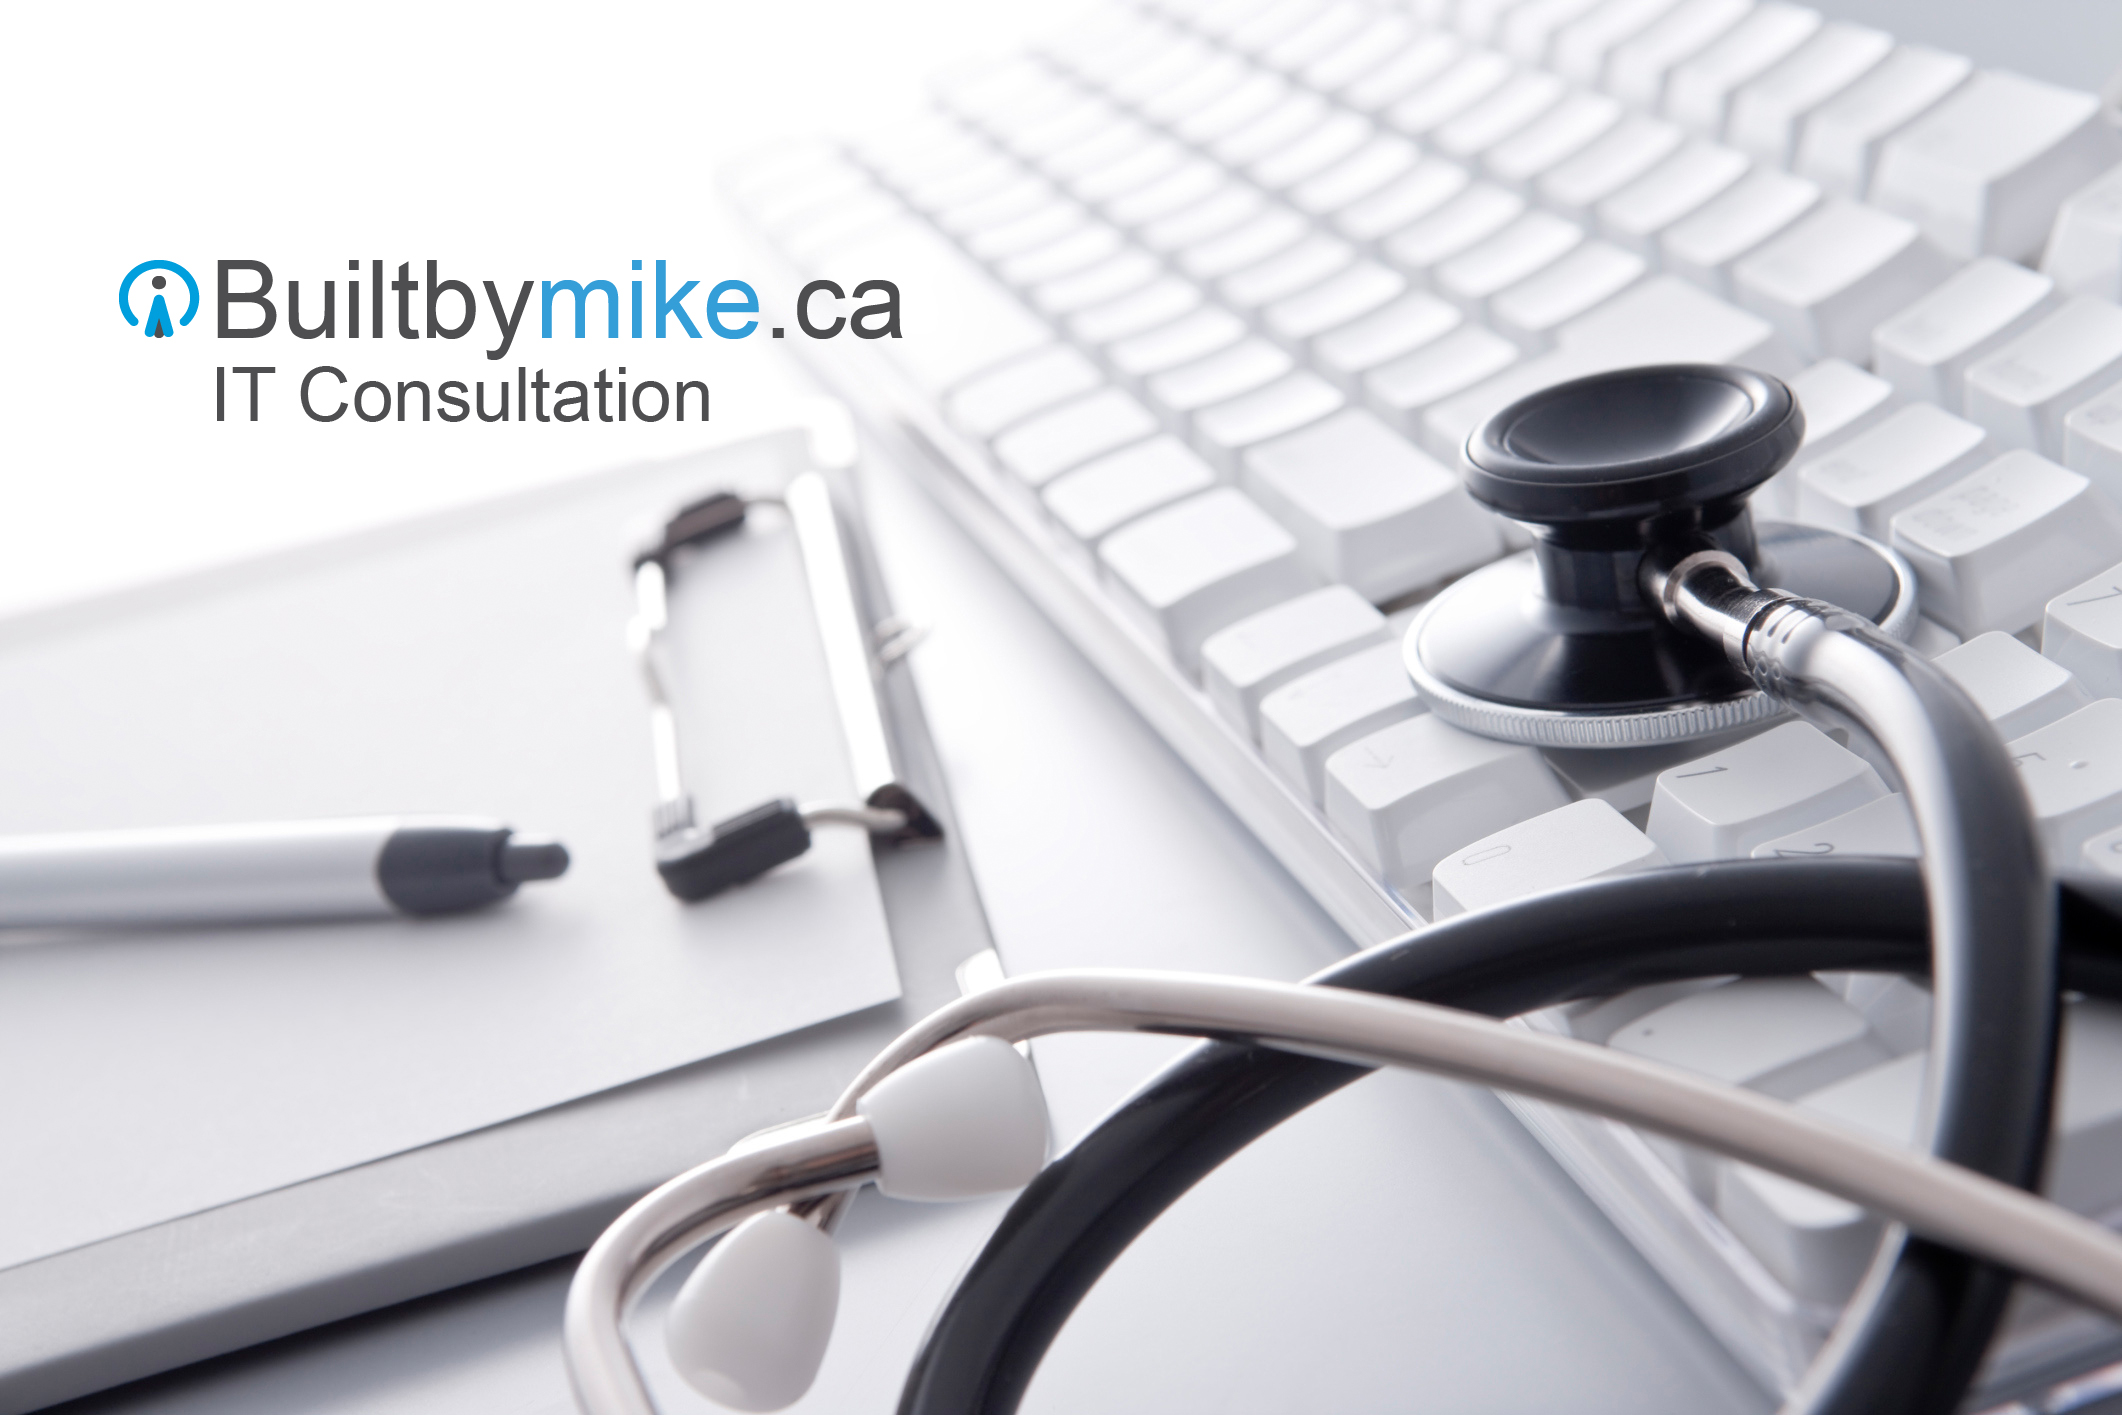 Builtbymike.ca IT Consultation